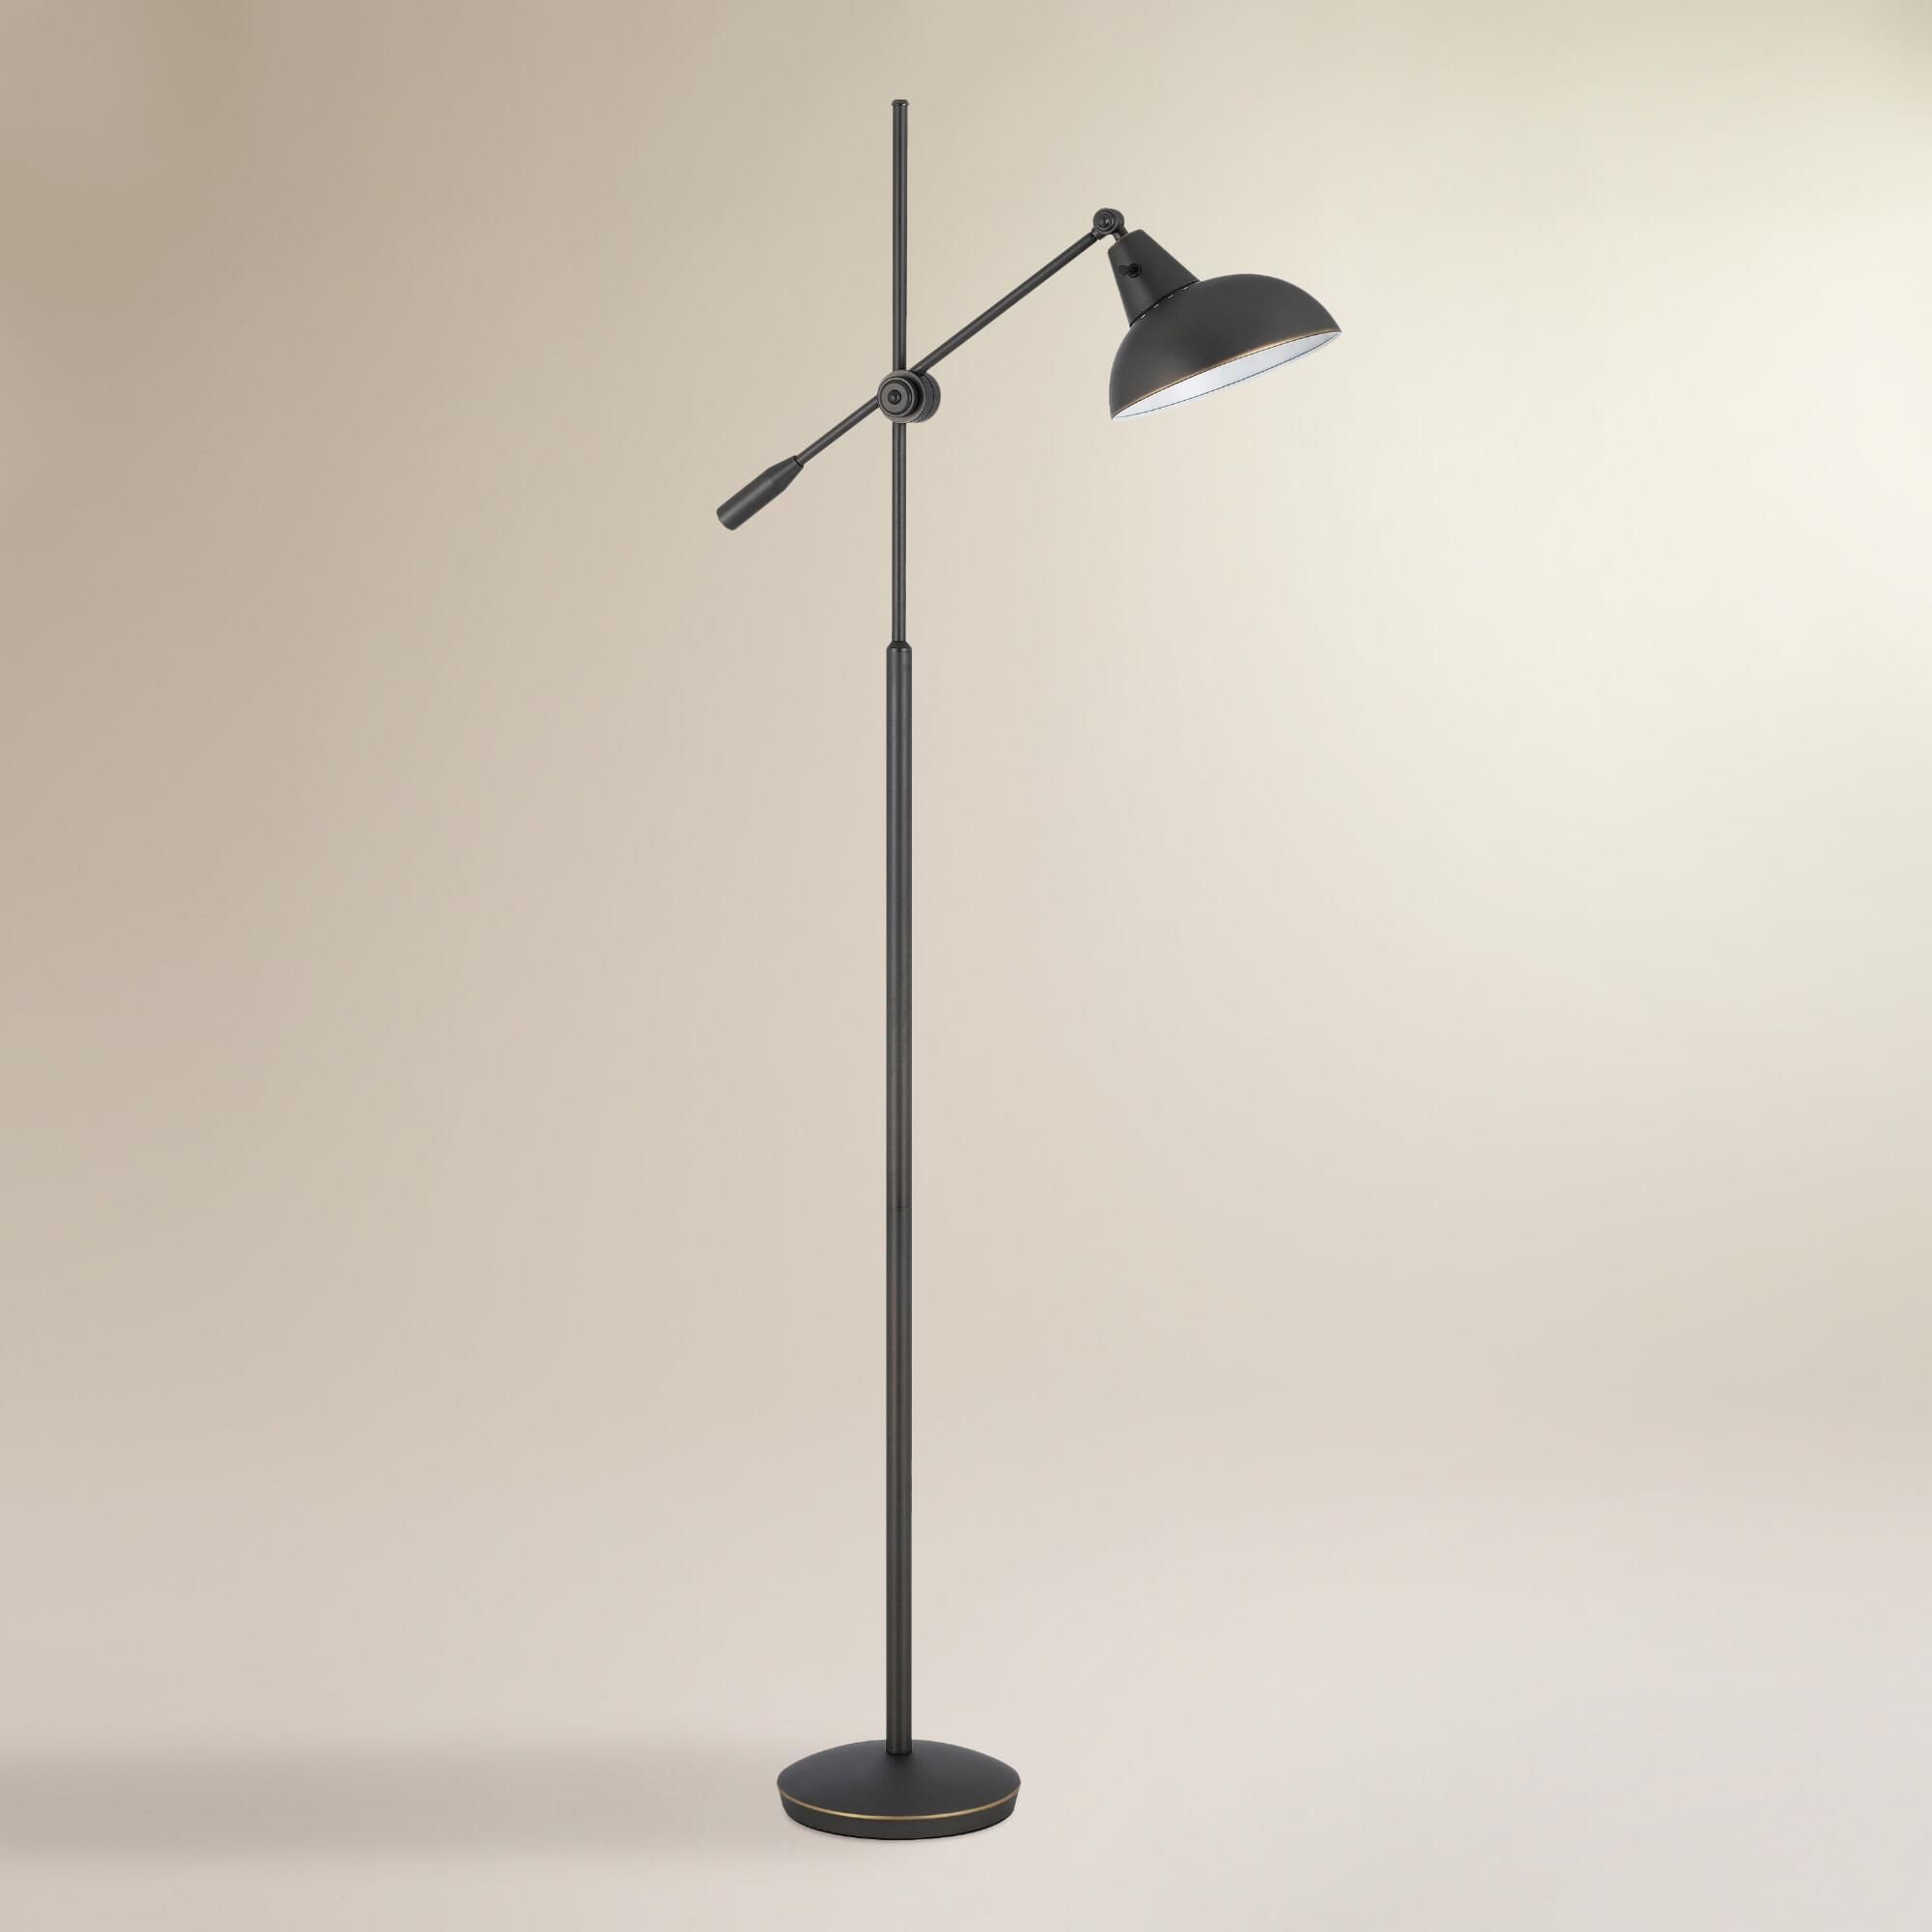 exmple lamp floors floor somethg nd austin oil cn reading rubbed bronze torchiere f fd